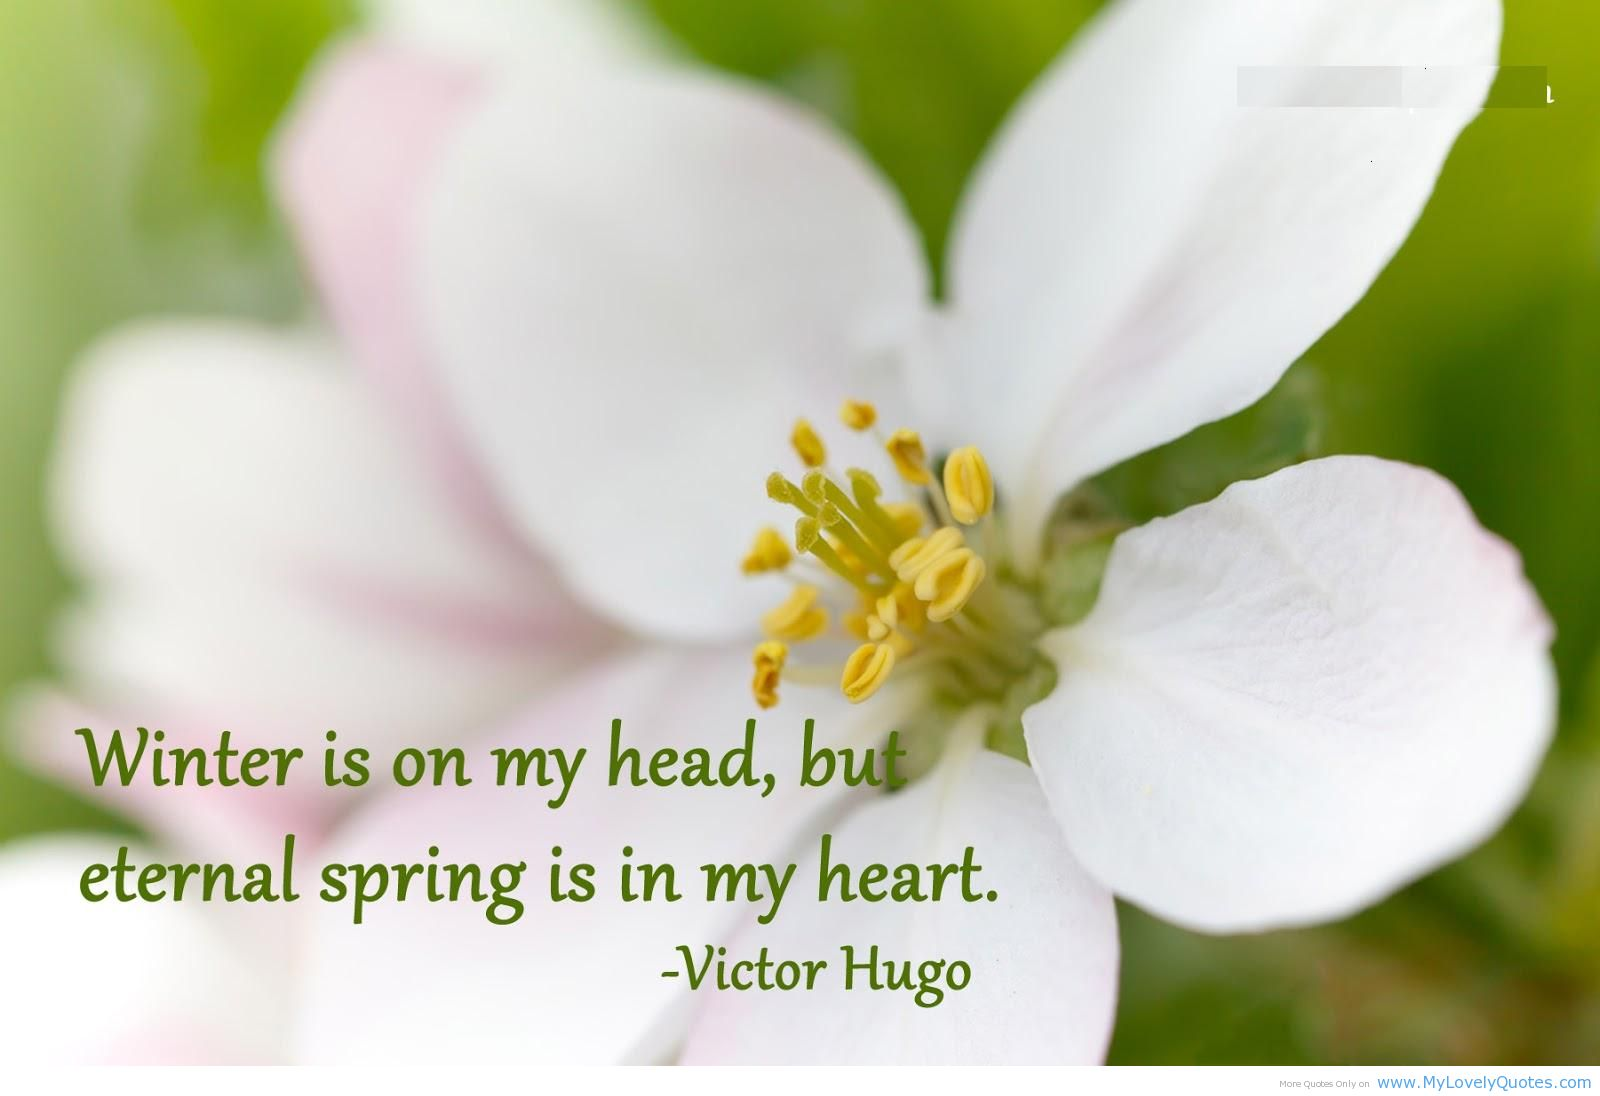 Amazing Wallpapers: Quotes spring, quotes about spring